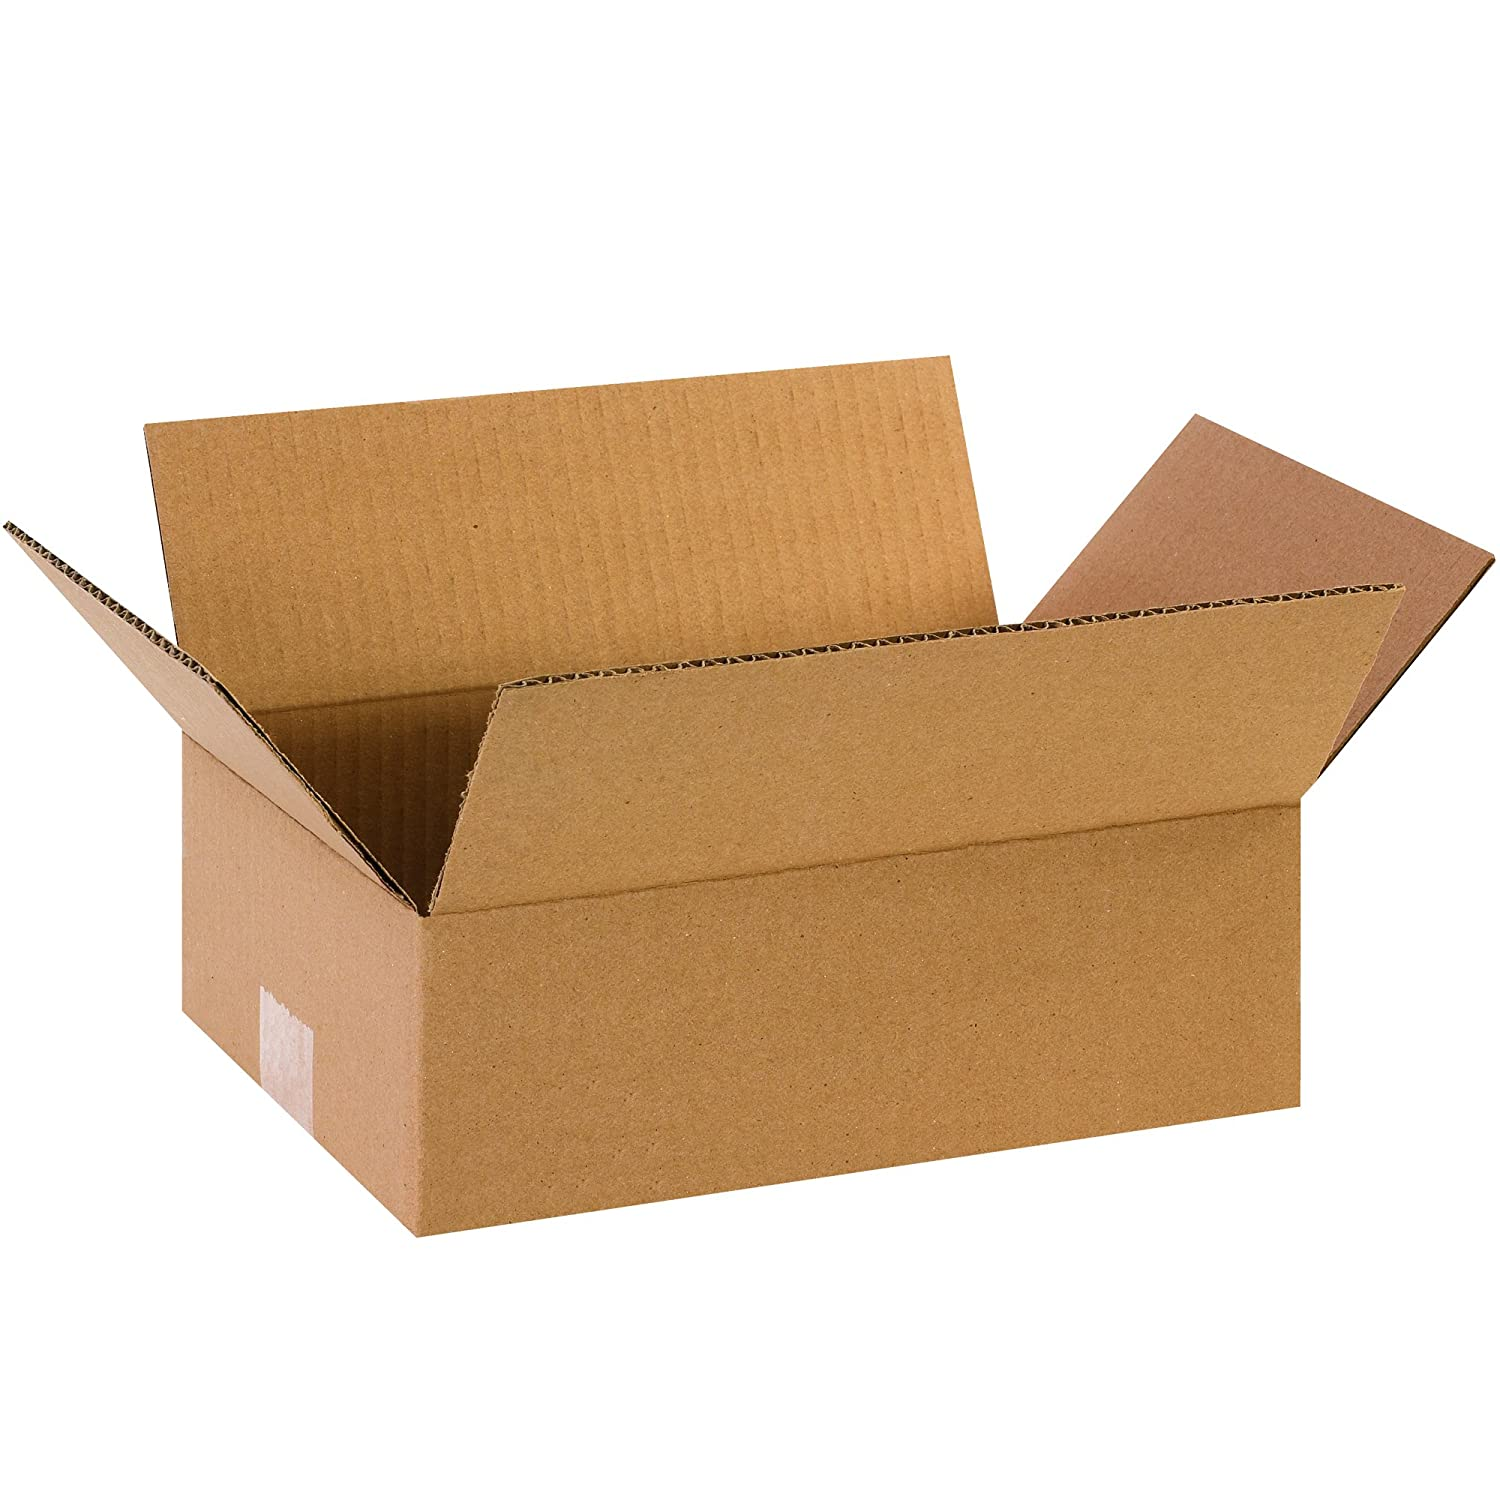 Pack of 25 Kraft 20 x 14 x 4 Tape Logic TL20144 Corrugated Boxes